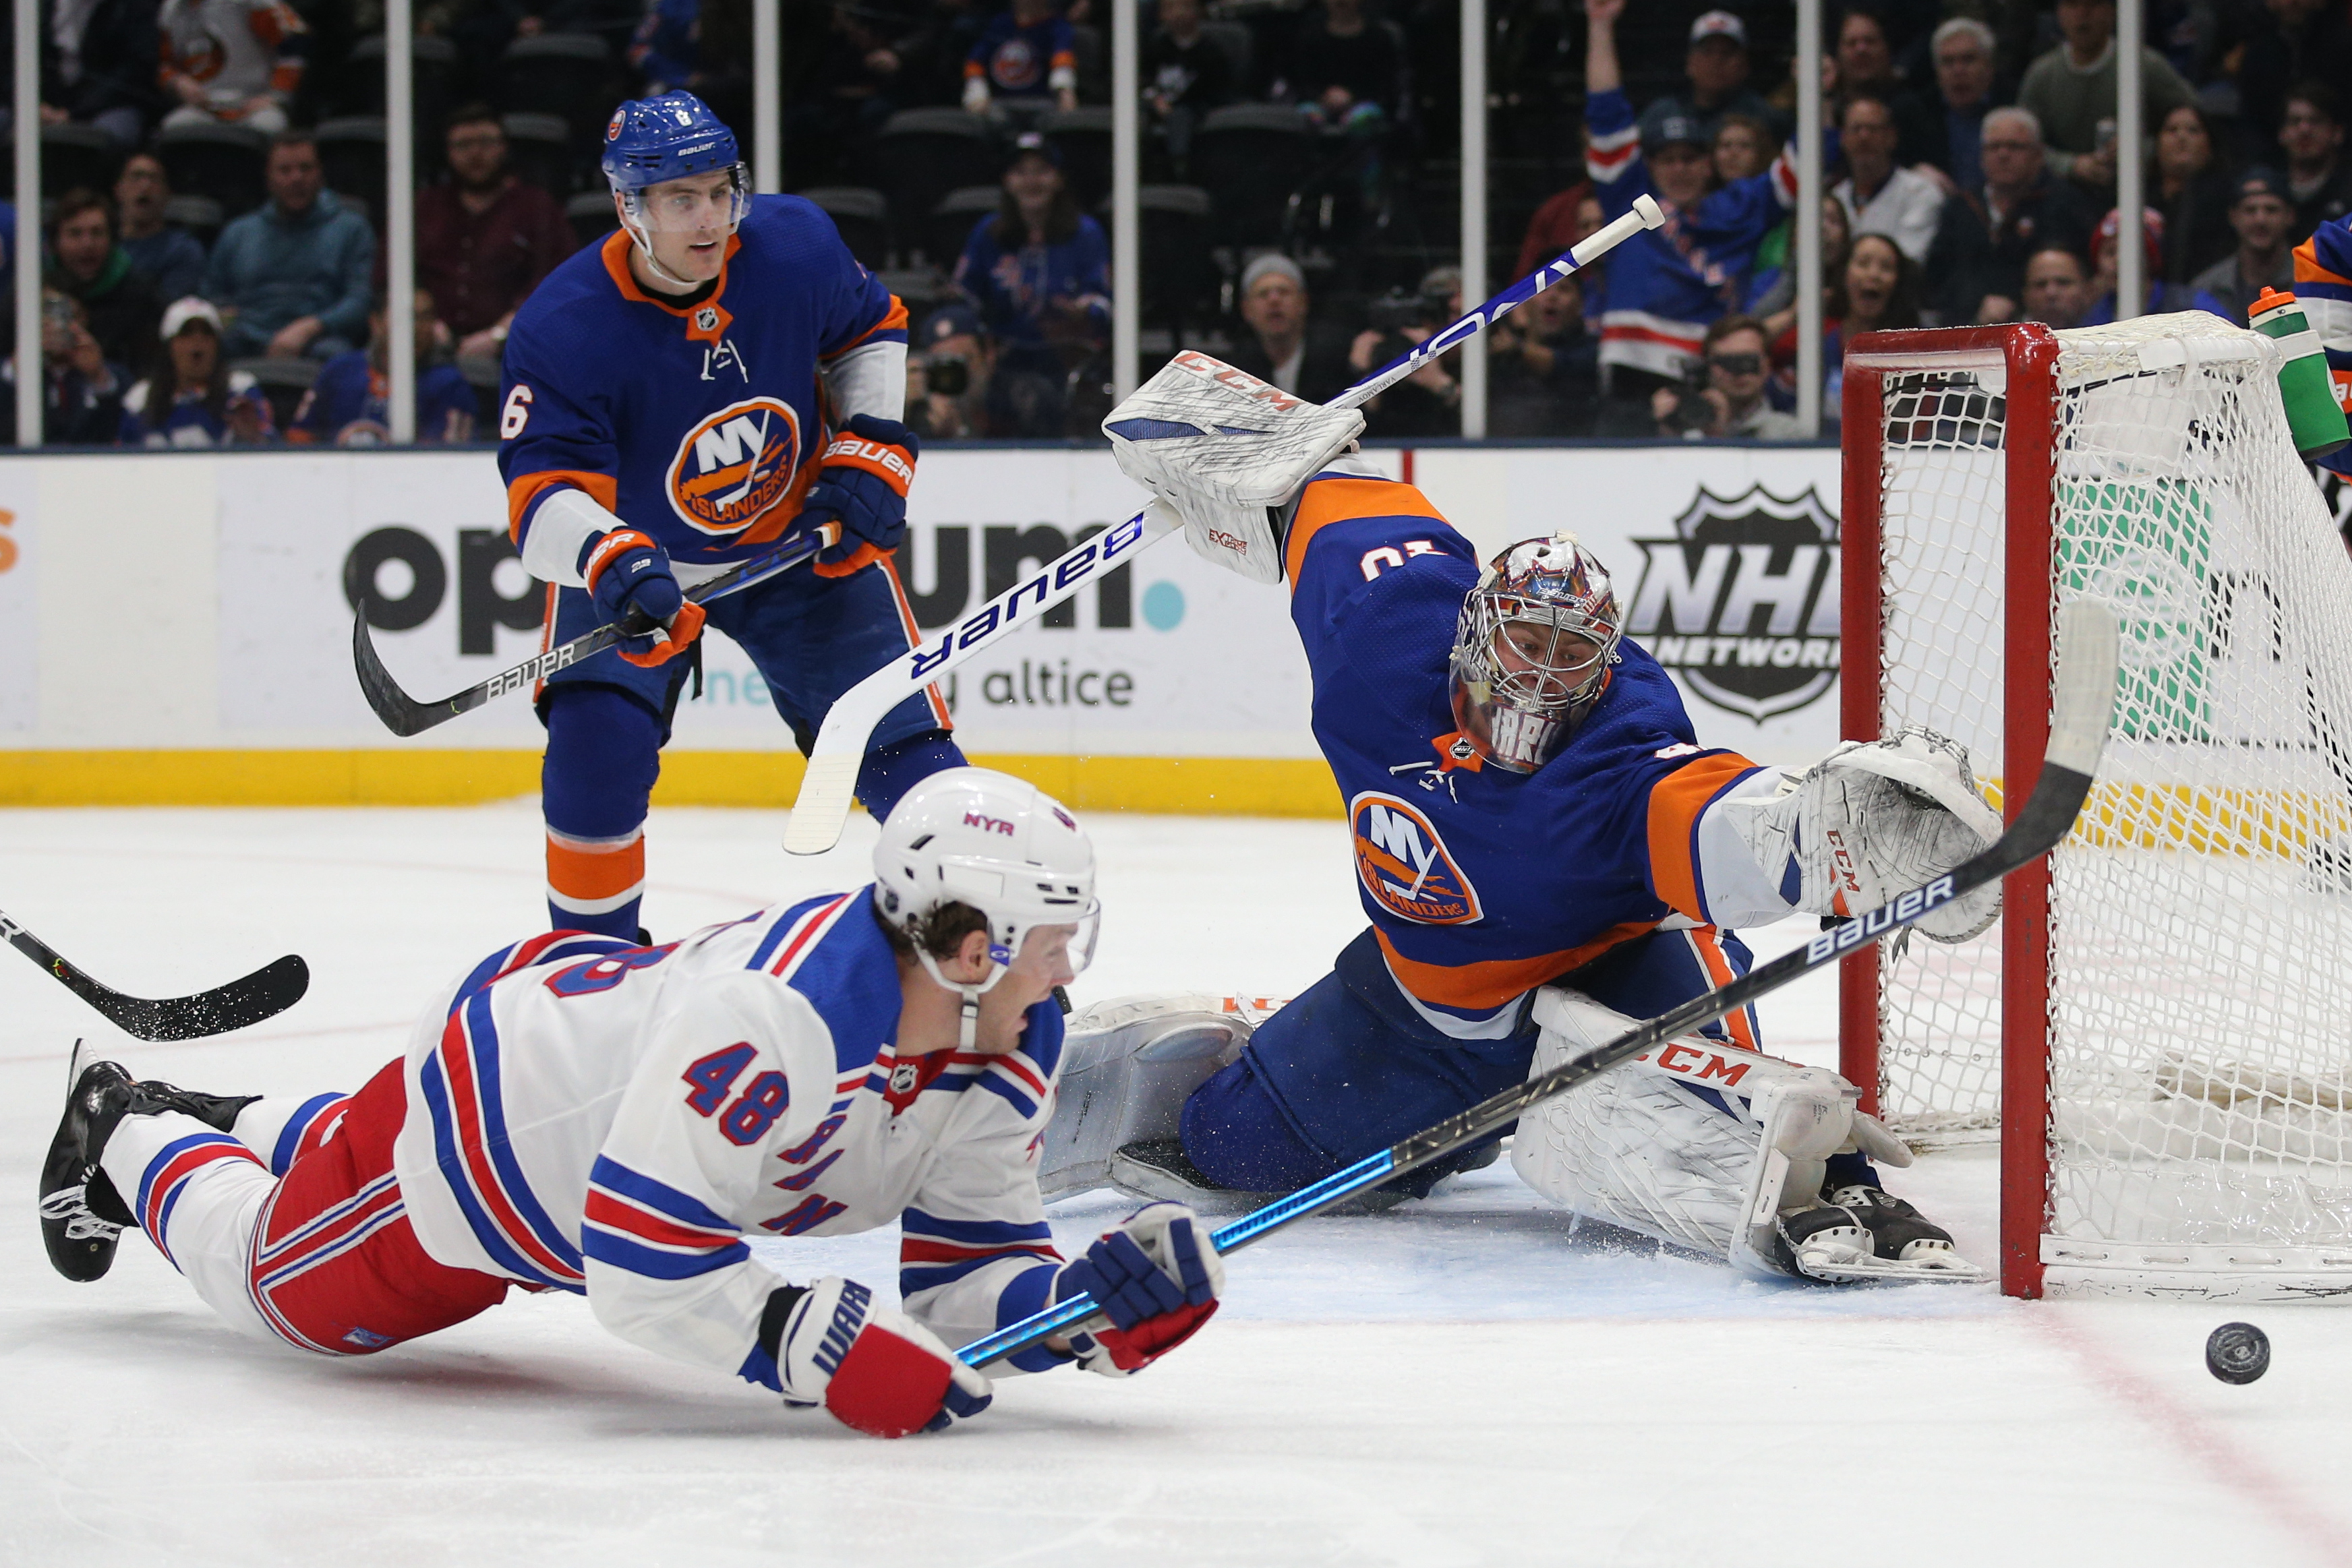 Feb 25, 2020; Uniondale, New York, USA; New York Islanders goalie Semyon Varlamov (40) makes a save on a shot by New York Rangers left wing Brendan Lemieux (48) during the first period at Barclays Center. Mandatory Credit: Brad Penner-USA TODAY Sports